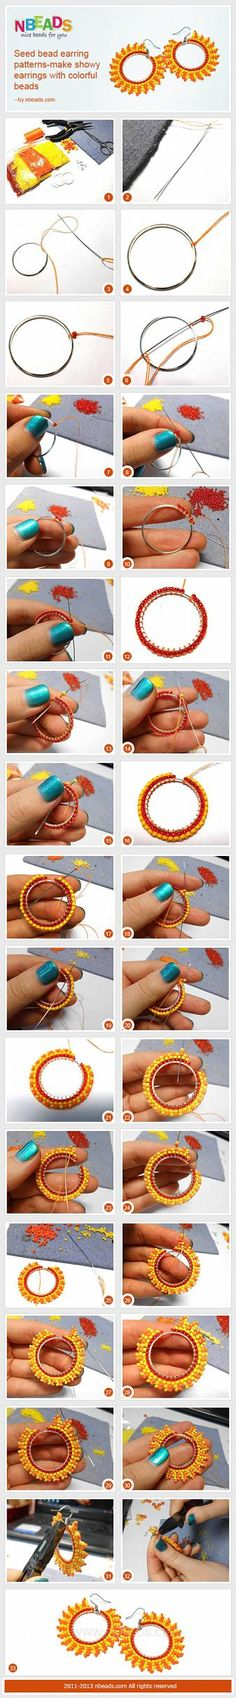 Seed Bead Earring Patterns-Make Showy Earrings with Colorful Beads – Nbeads